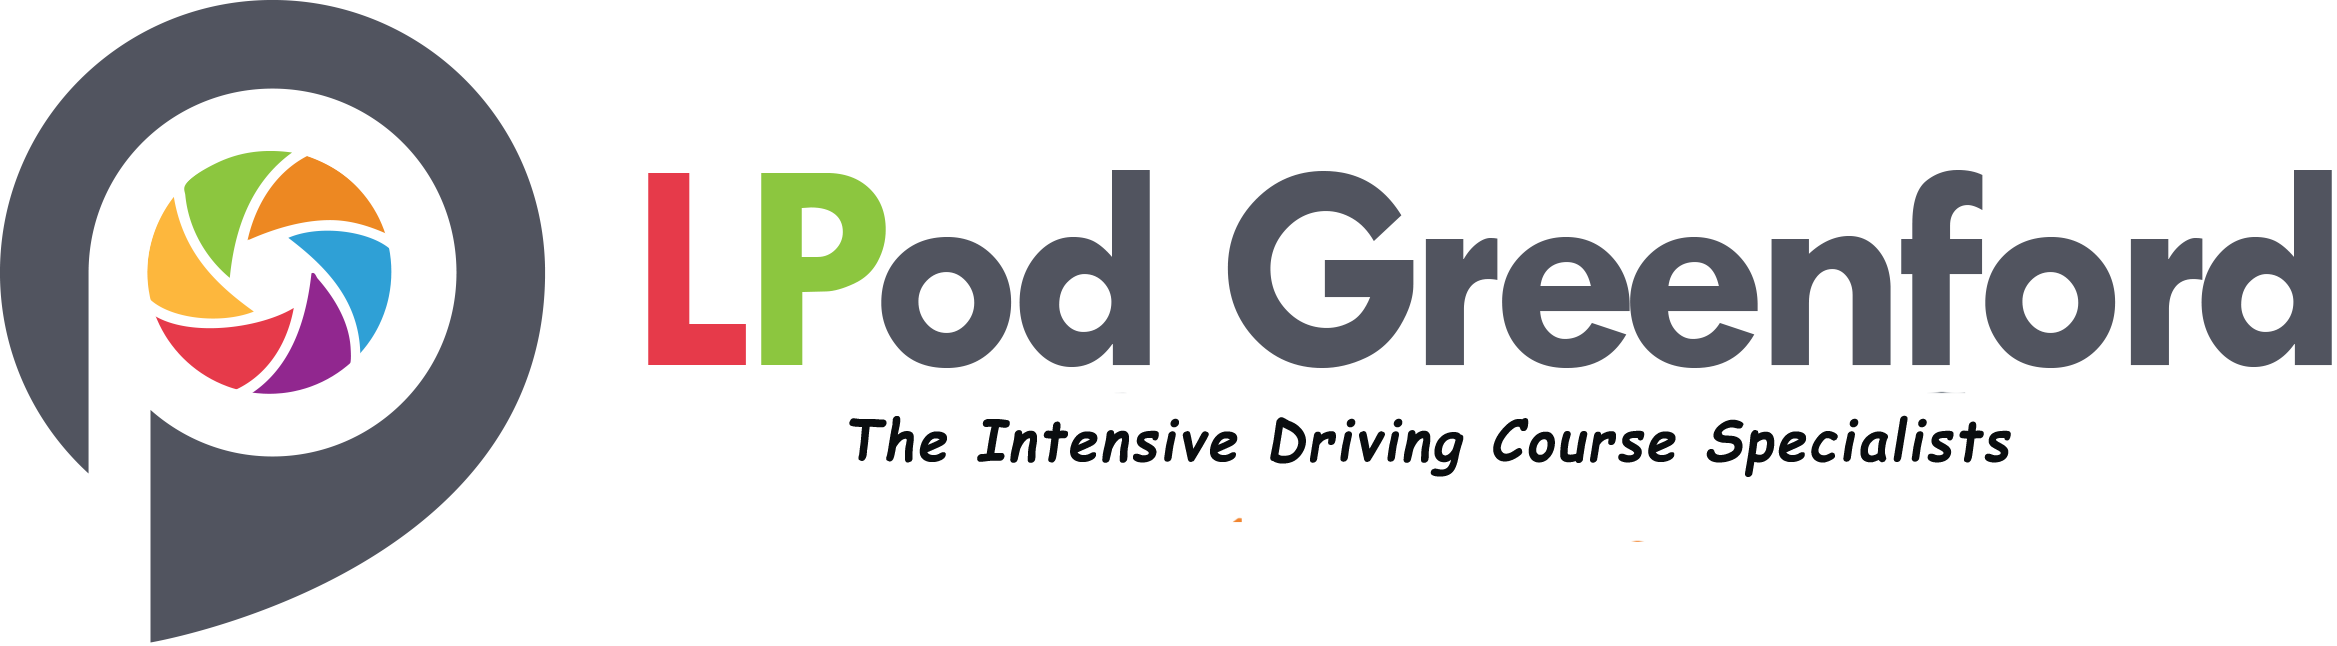 intensive driving courses greenford, intensive driving school greenford, intensive driving lessons greendford, one week driving course greenford, fast pass driving greenford, crash driving courses greenford, driving lessons greenford, automatic driving lessons greenford